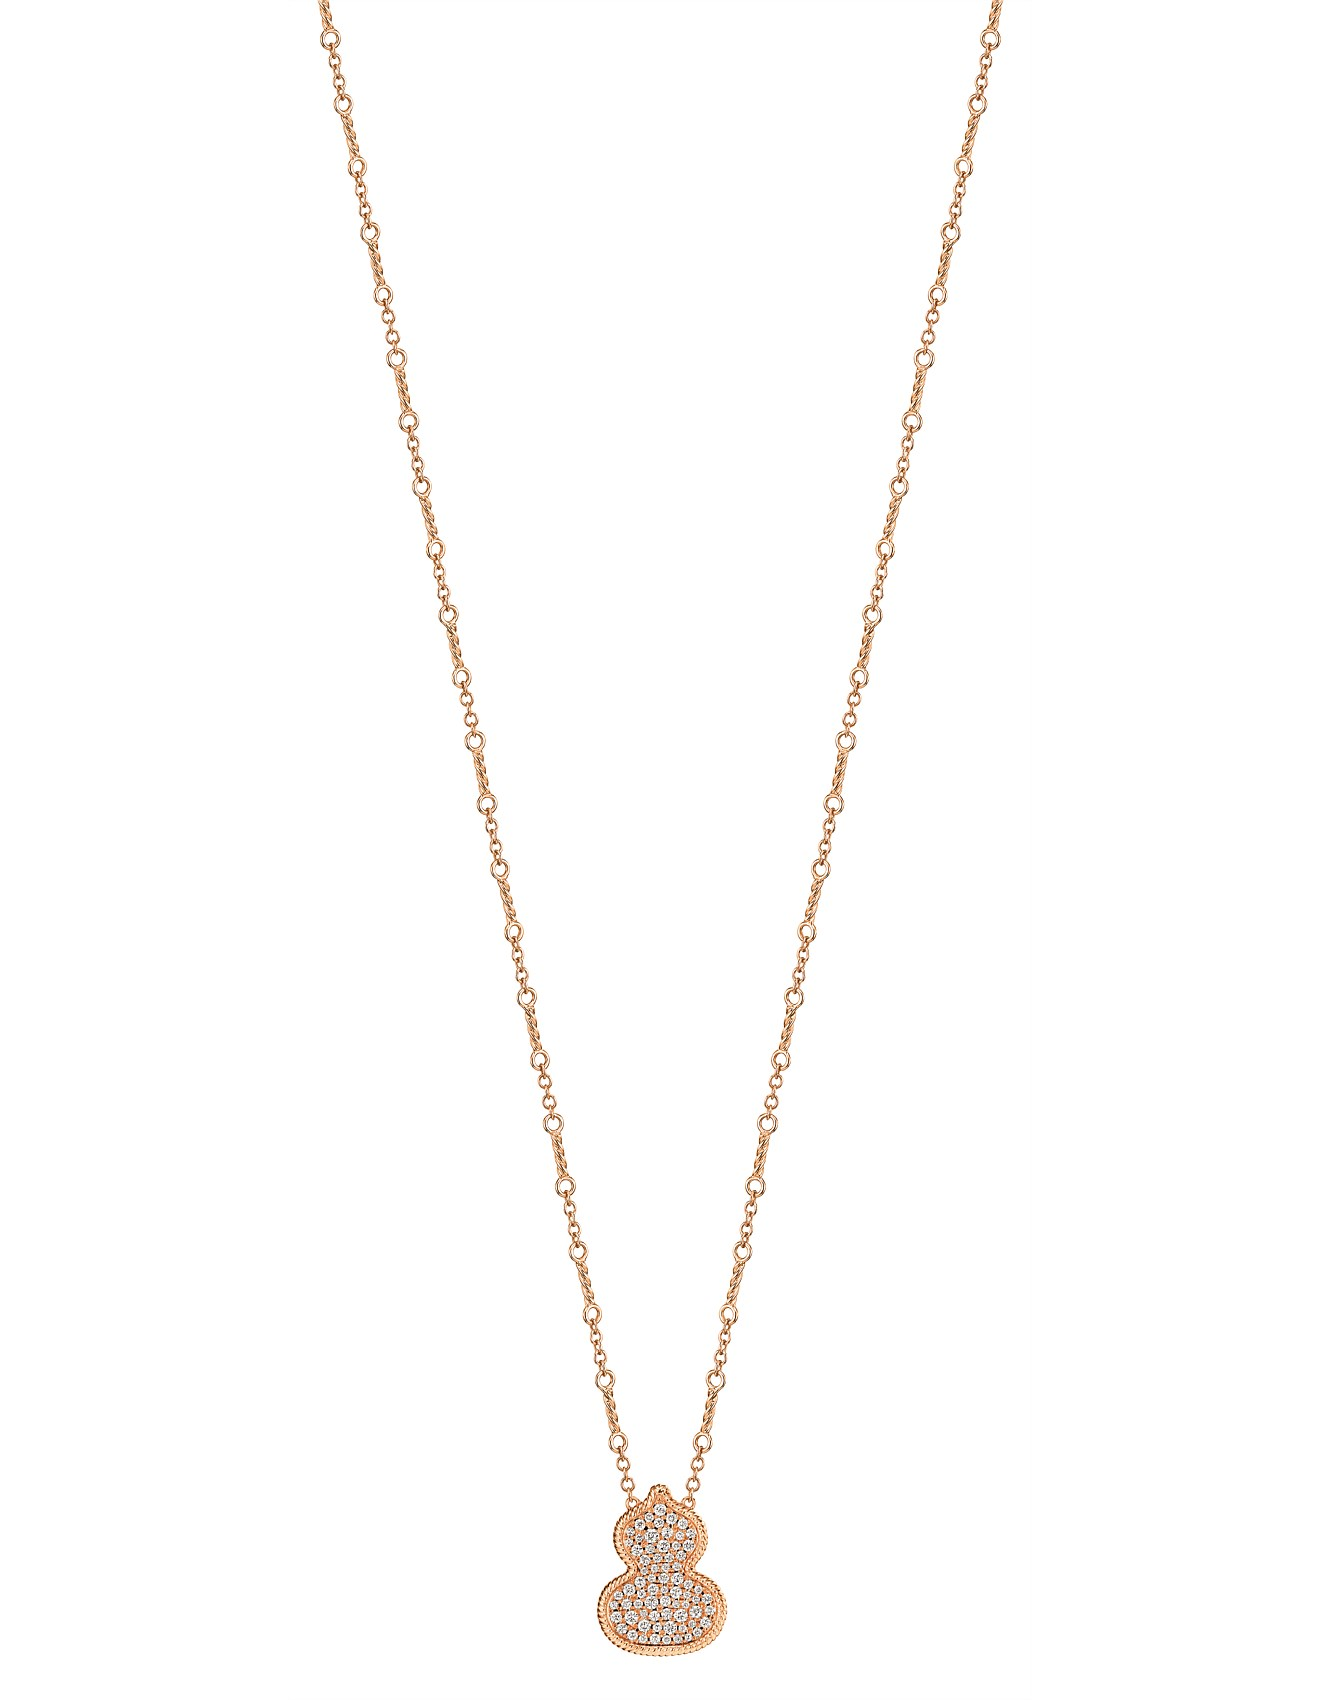 Necklace Wulu Necklace In 18k Rose Gold With Diamonds